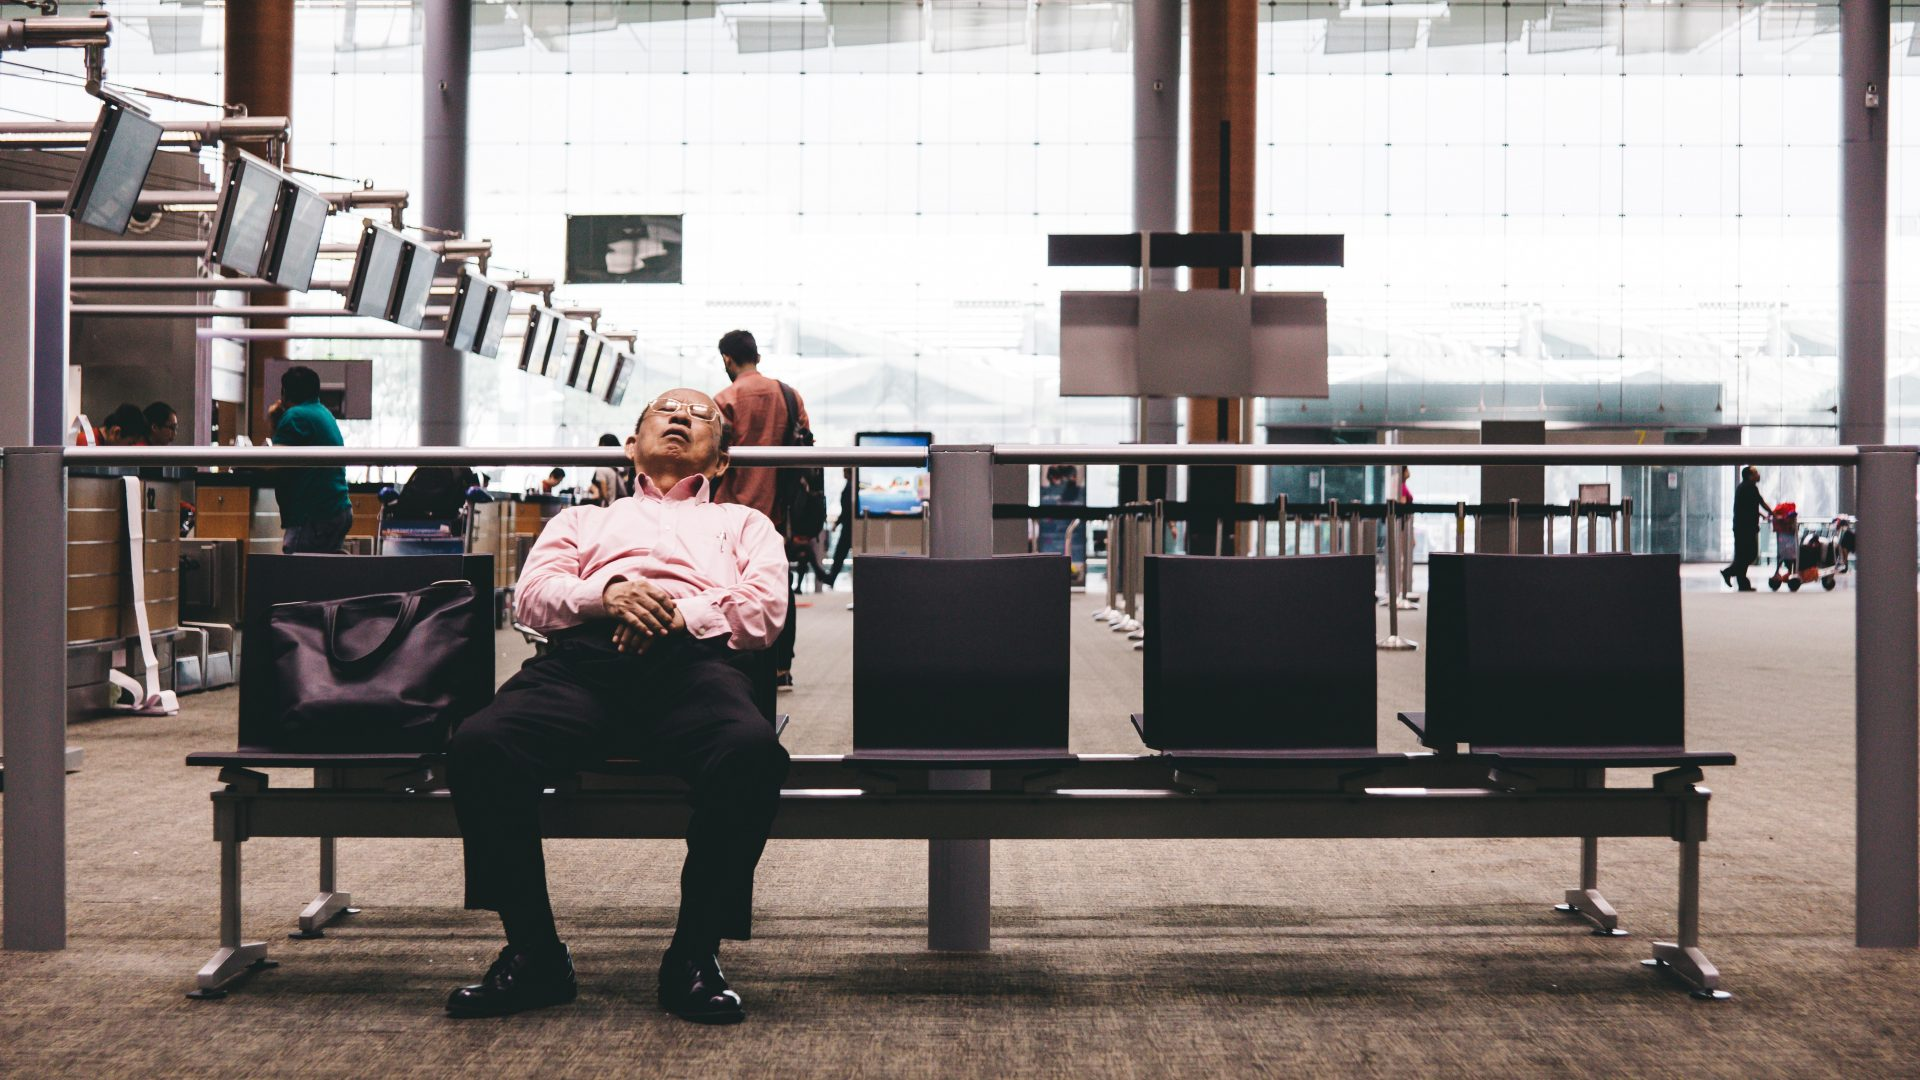 Older man sleeping at airport check in area, waiting for delayed flight